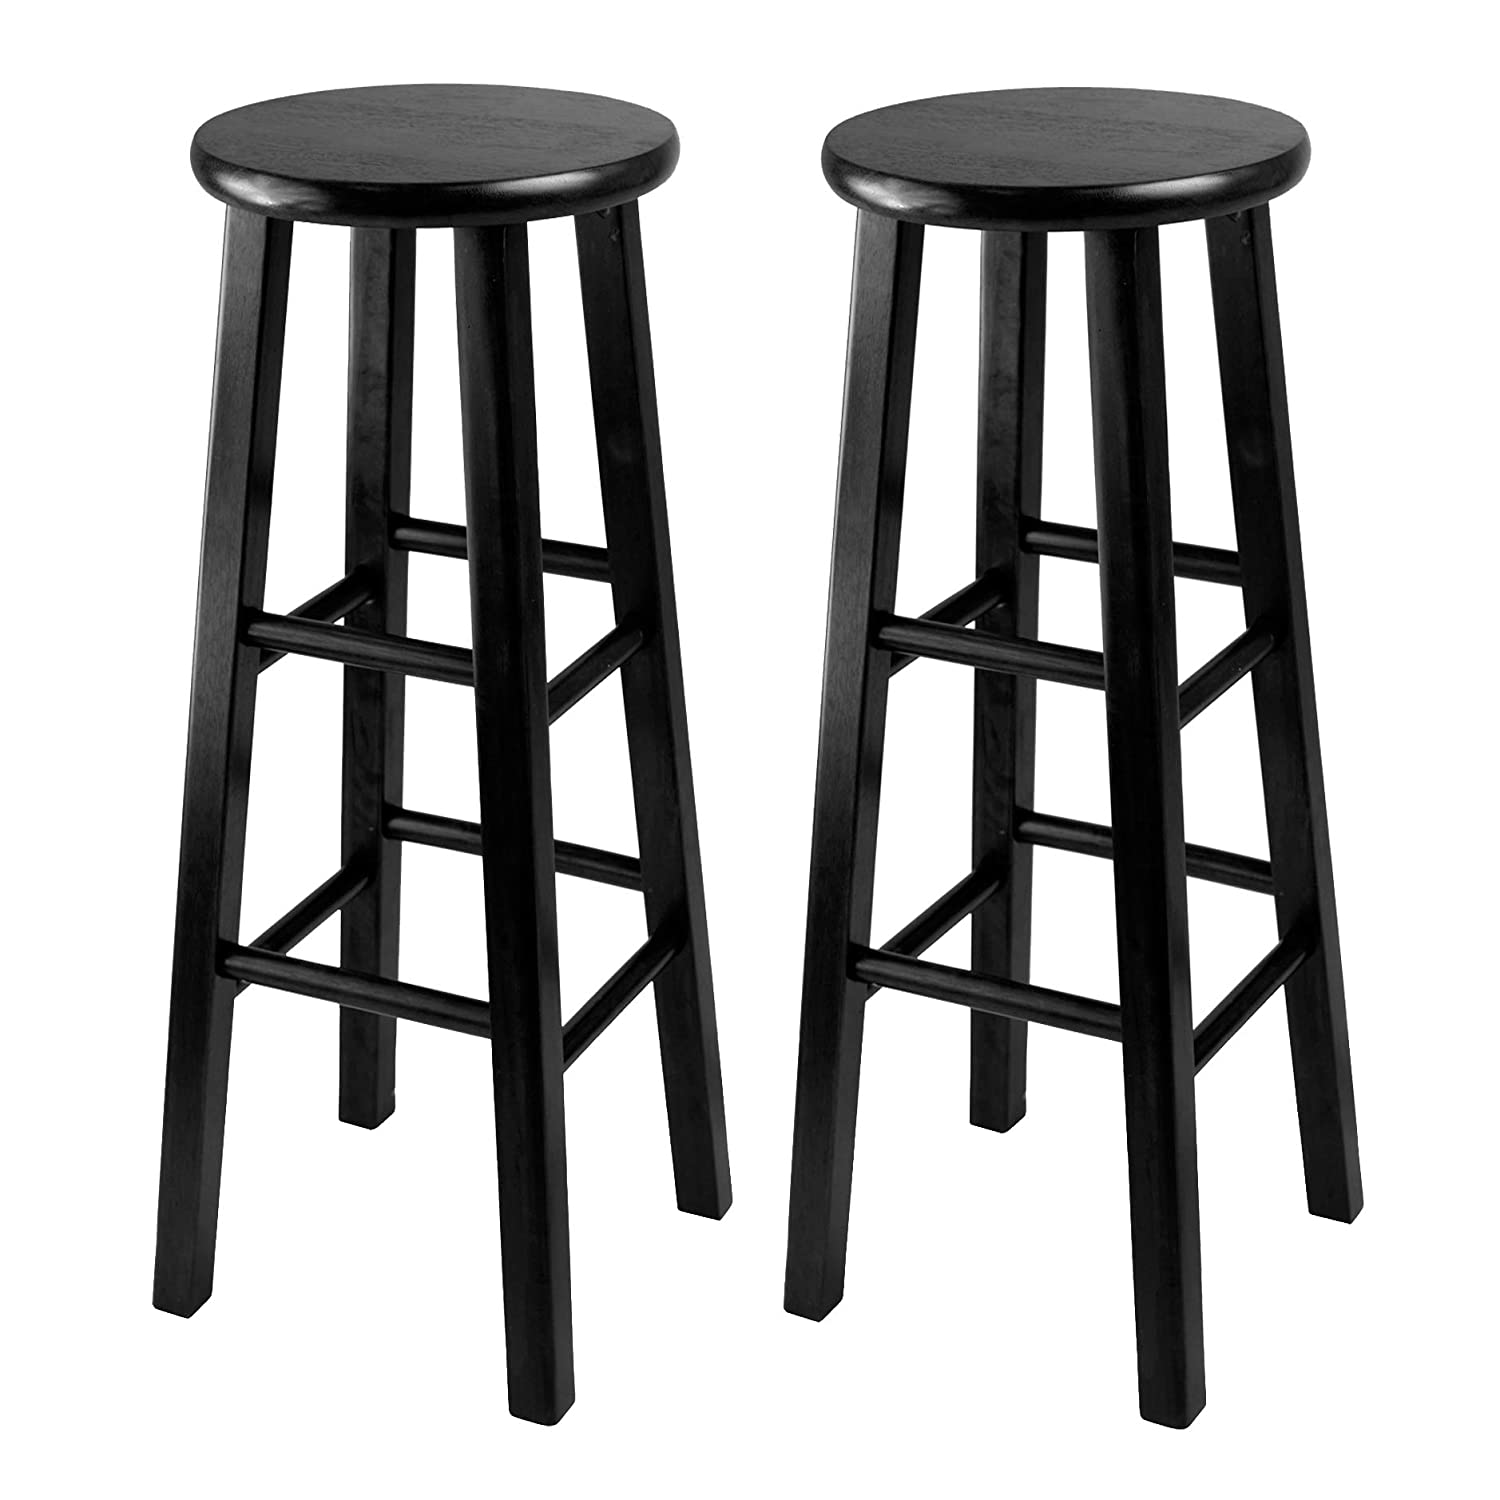 Groovy Winsome 29 Inch Square Leg Bar Stool Black Set Of 2 Pabps2019 Chair Design Images Pabps2019Com